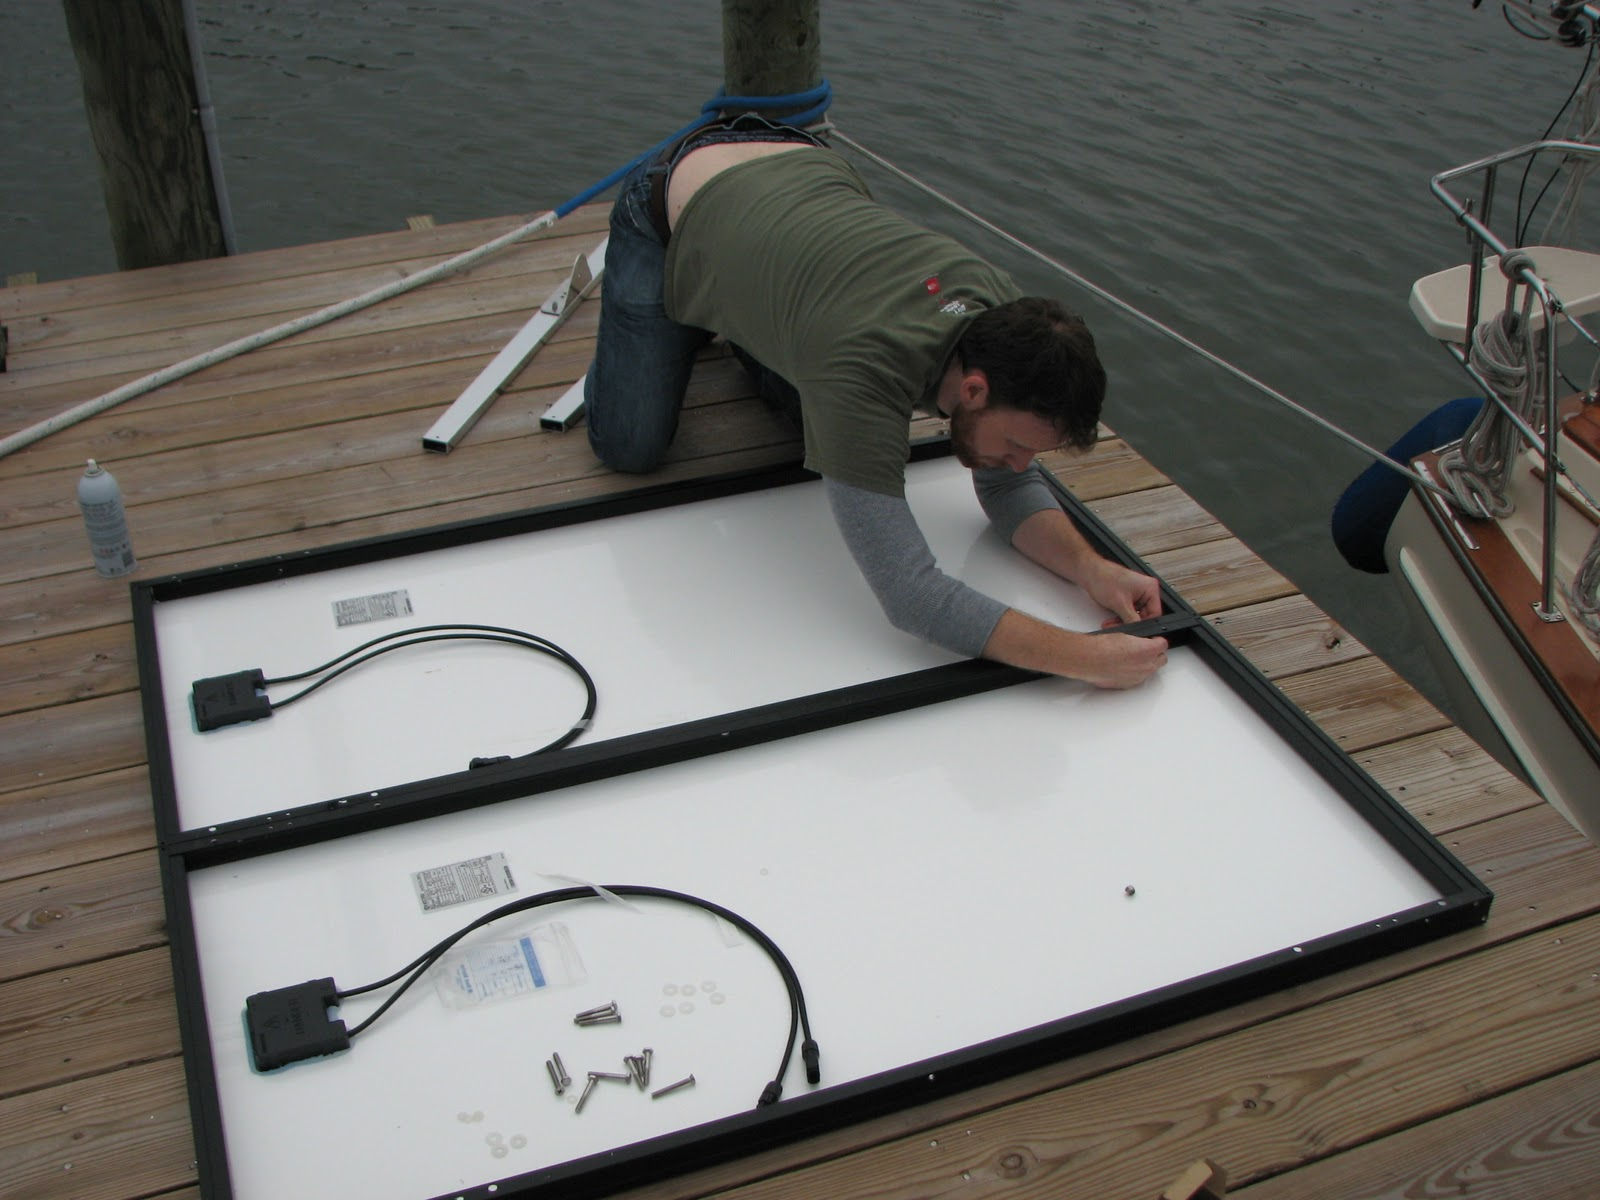 Marine solar panel installations first mate marine inc - Solar Panel Installation